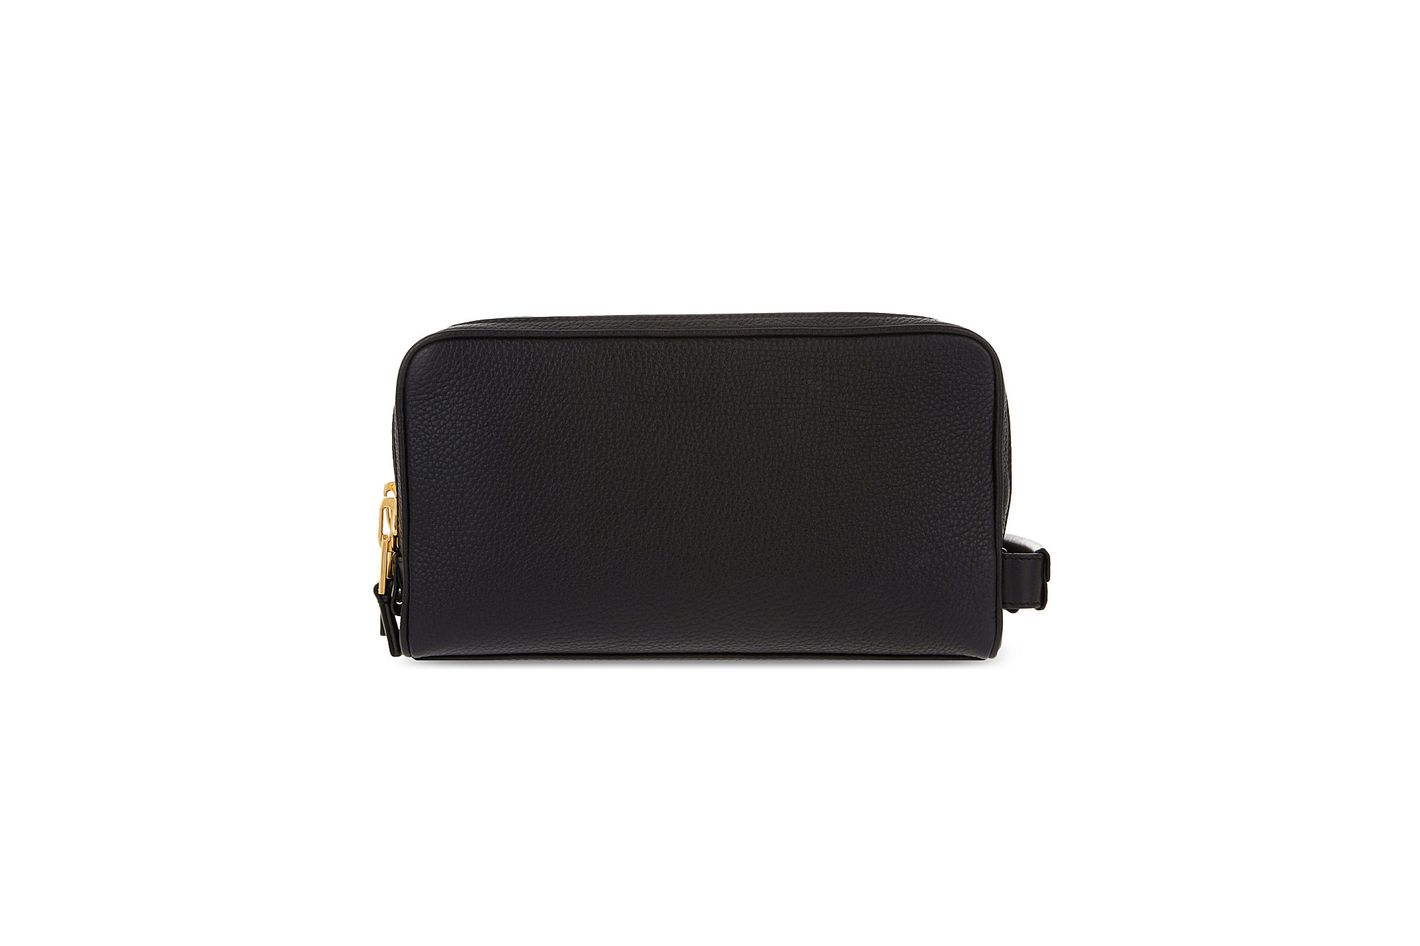 Tom Ford Double Zip Leather Dopp Kit